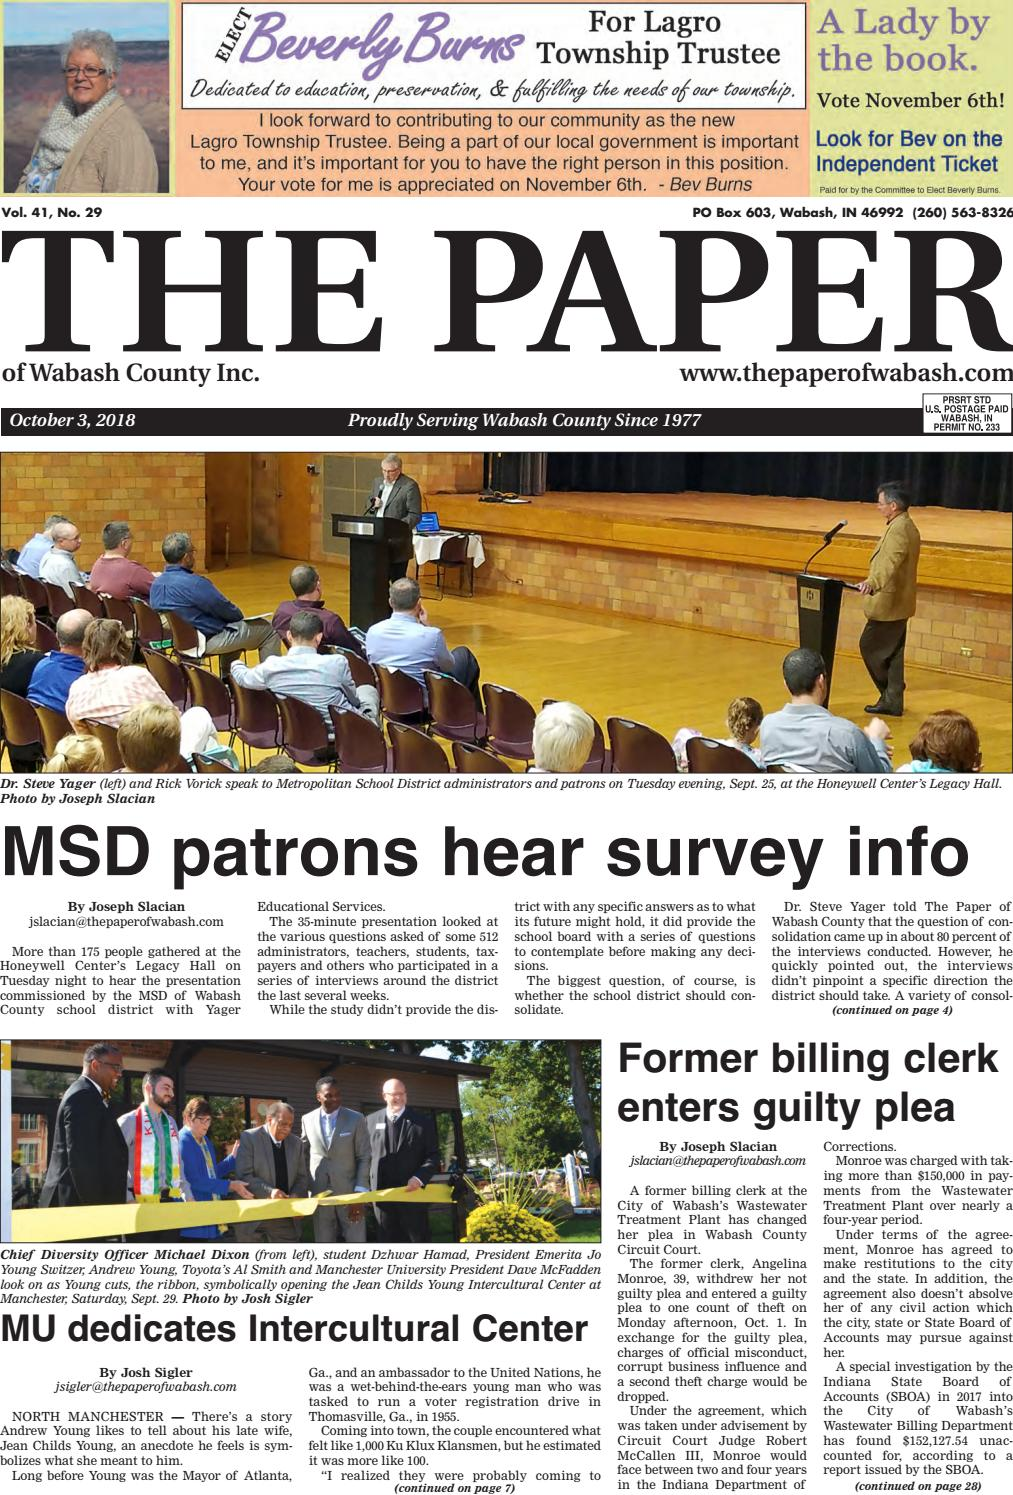 53c66e6d0 The Paper of Wabash County, Oct. 3, 2018 issue by The Paper of Wabash  County - issuu